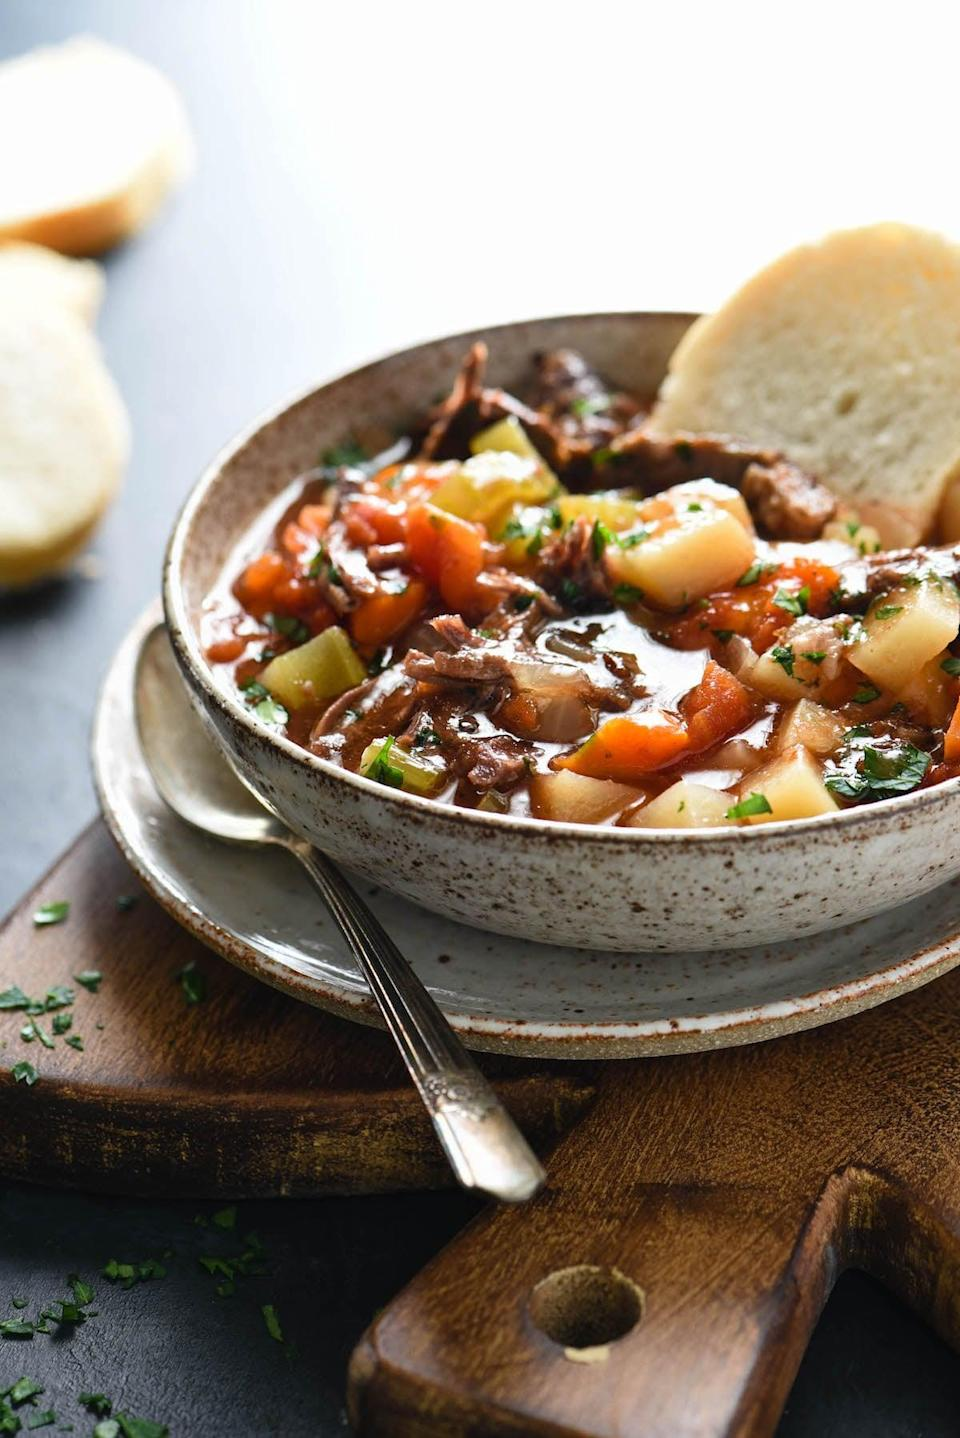 """<p>Bookmark this <a href=""""https://foxeslovelemons.com/slow-cooker-vegetable-beef-soup/"""" class=""""link rapid-noclick-resp"""" rel=""""nofollow noopener"""" target=""""_blank"""" data-ylk=""""slk:vegetable beef soup"""">vegetable beef soup</a> for chilly or rainy nights in.</p>"""